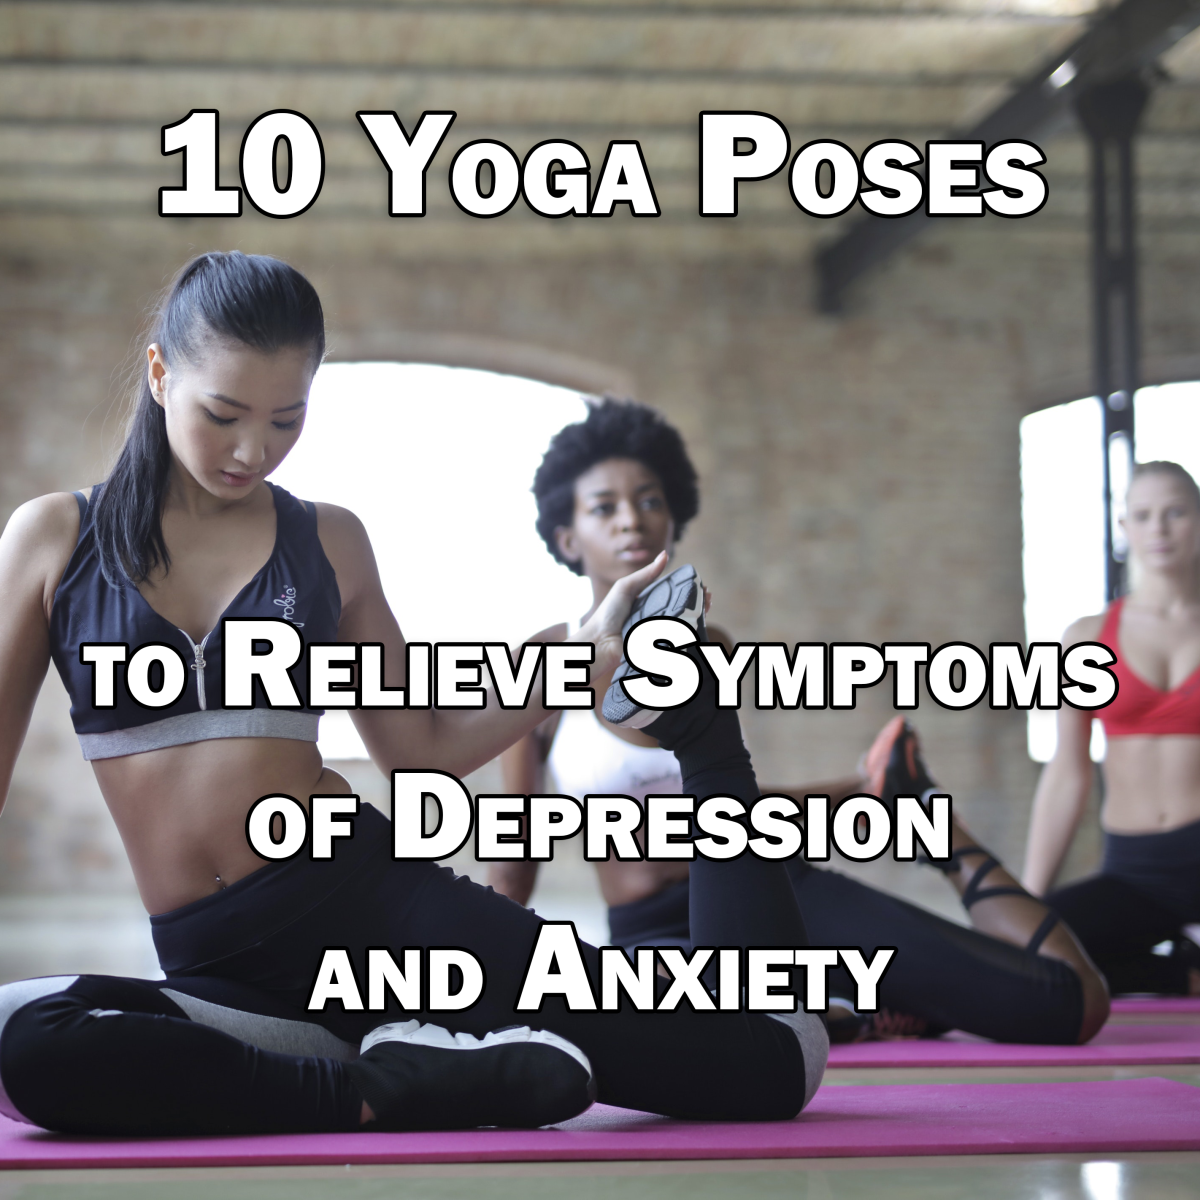 10 Yoga Poses to Relieve Symptoms of Depression and Anxiety